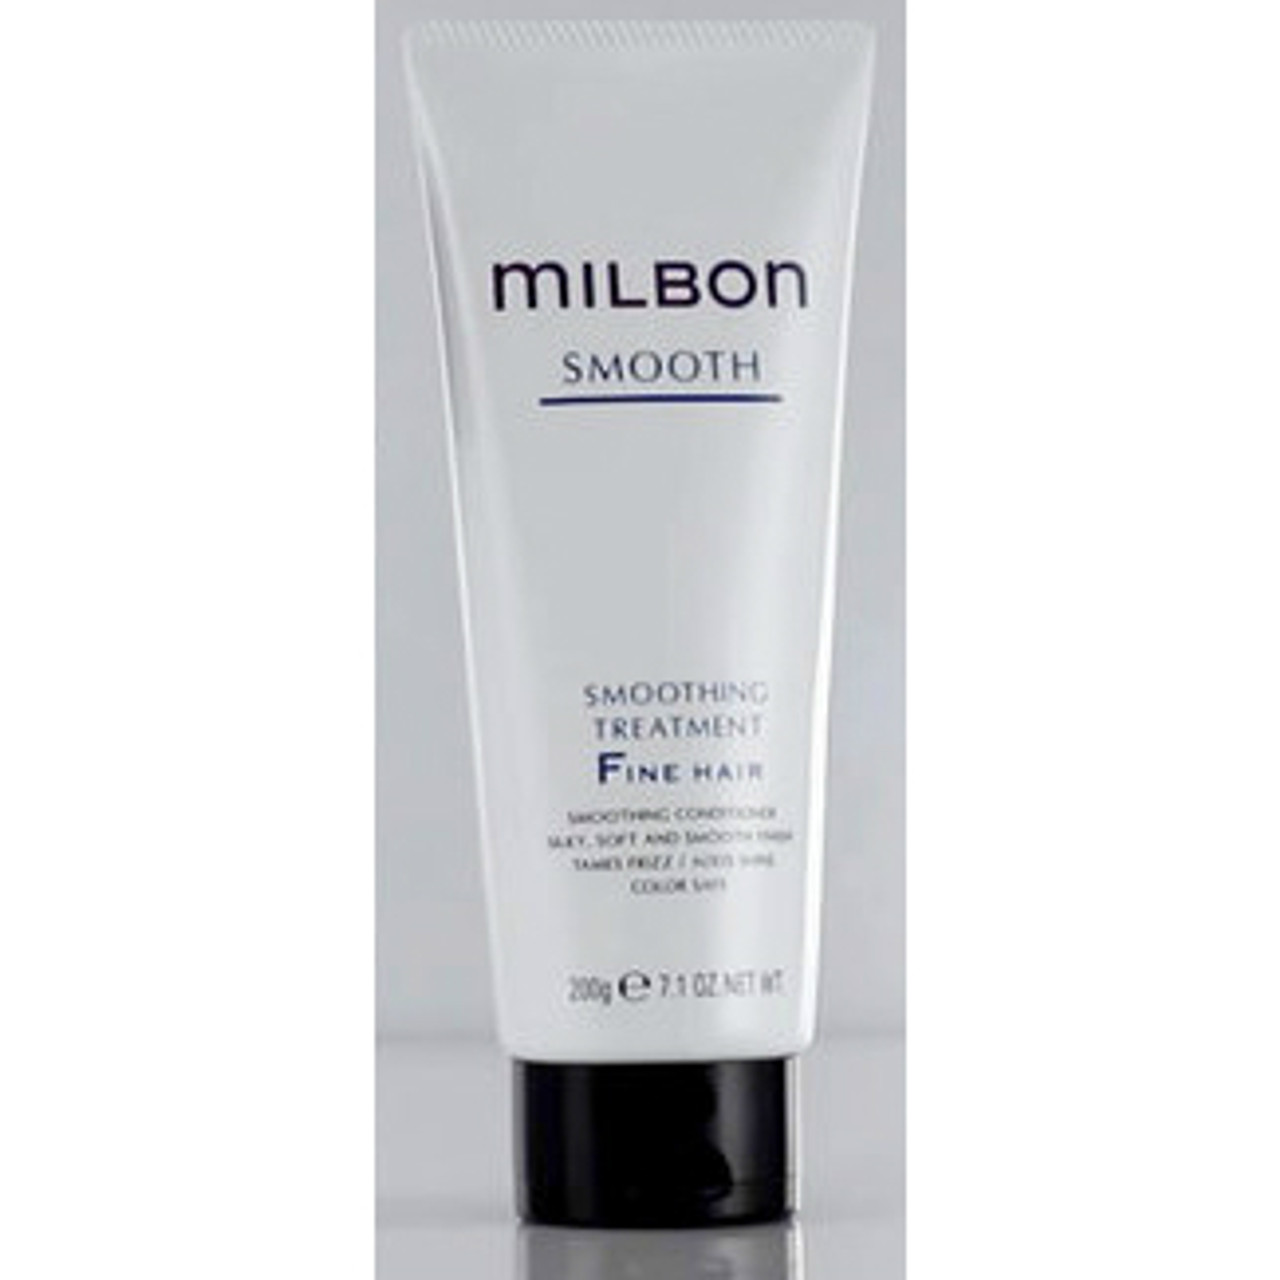 Milbon Smoothing Treatment Fine Hair Conditioner